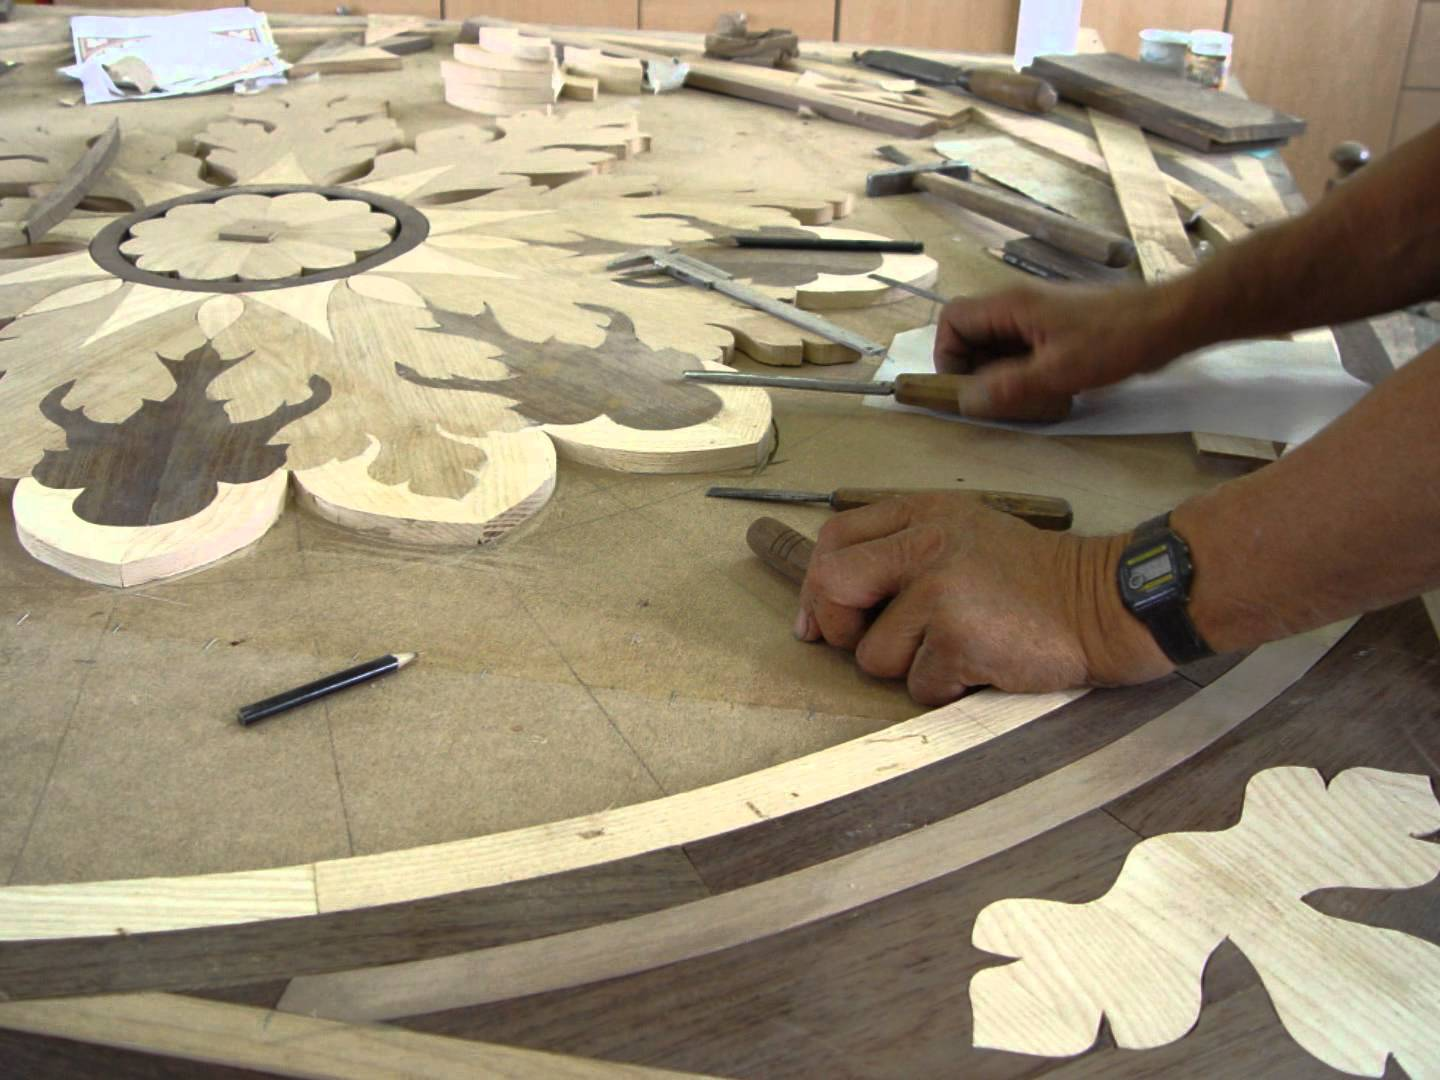 Dicovering the Ancient Art of Marquetry craftsmanship wood flooring ancient art of marquetry Discovering the Ancient Art of Marquetry Dicovering the Ancient Art of Marquetry craftsmanship wood flooring